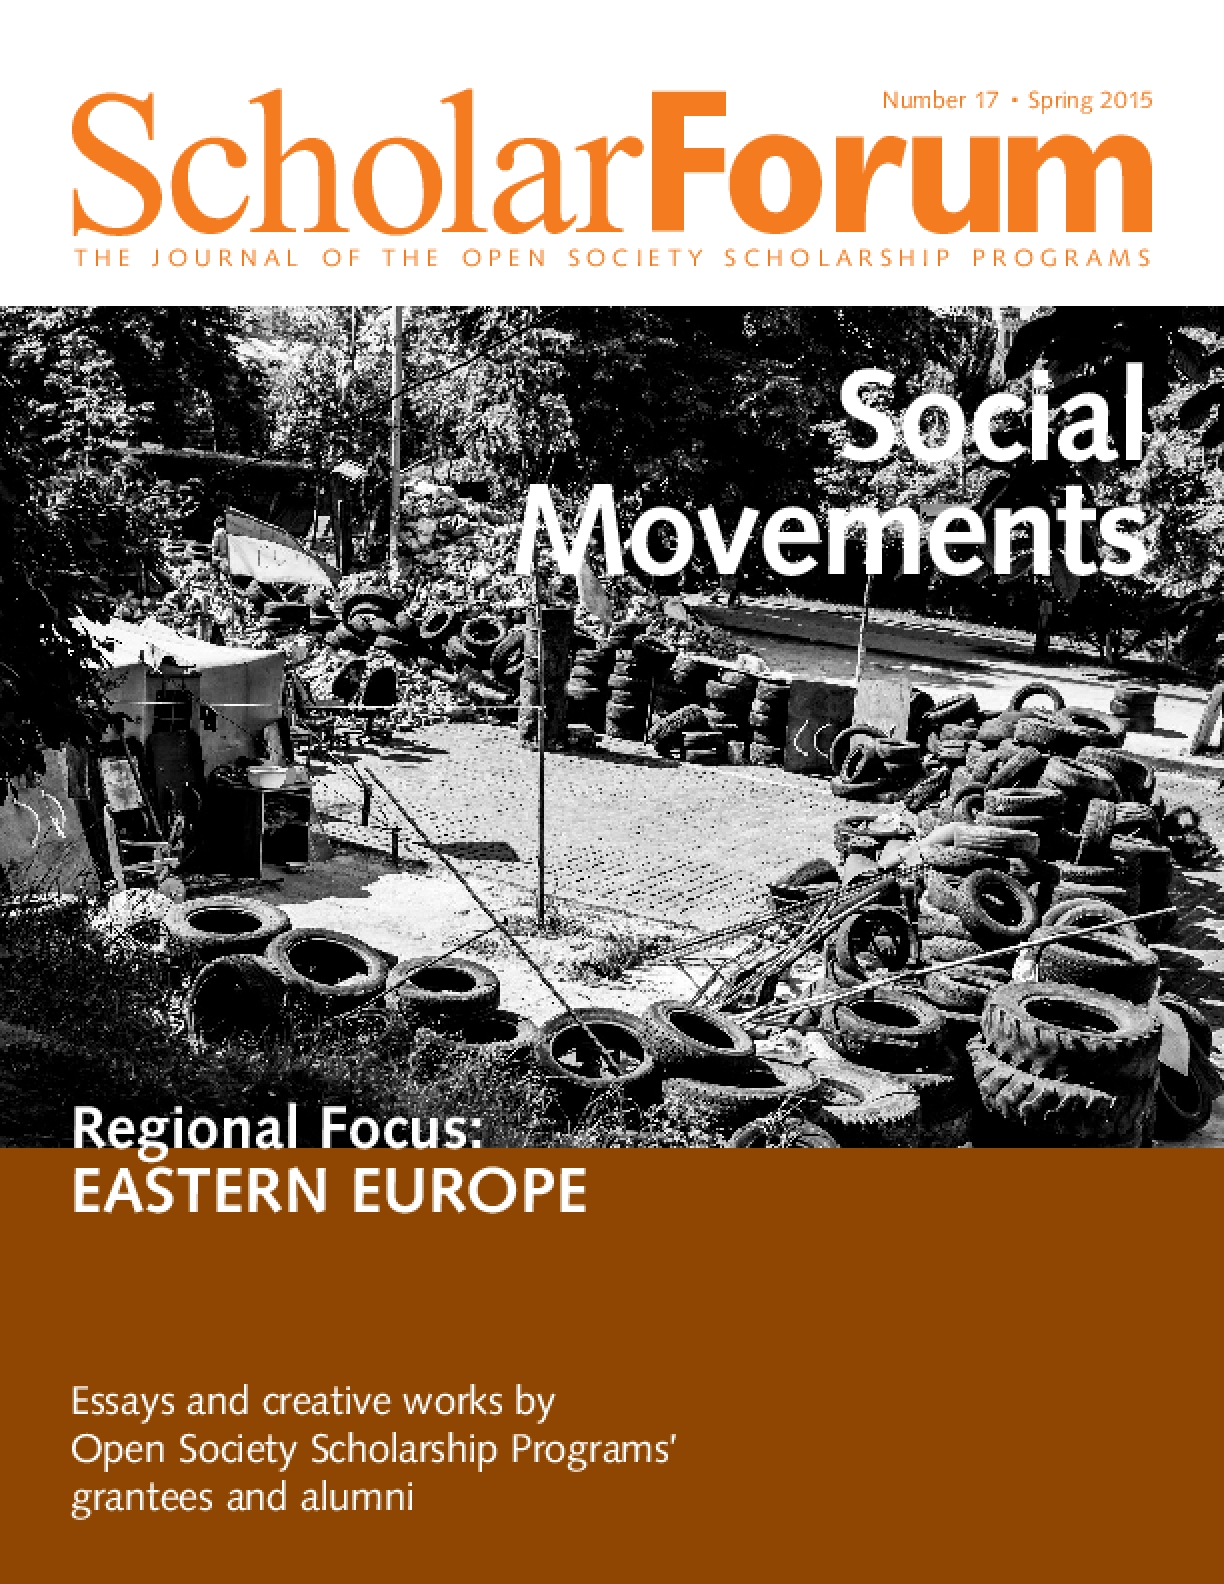 ScholarForum: Social Movements/Eastern Europe